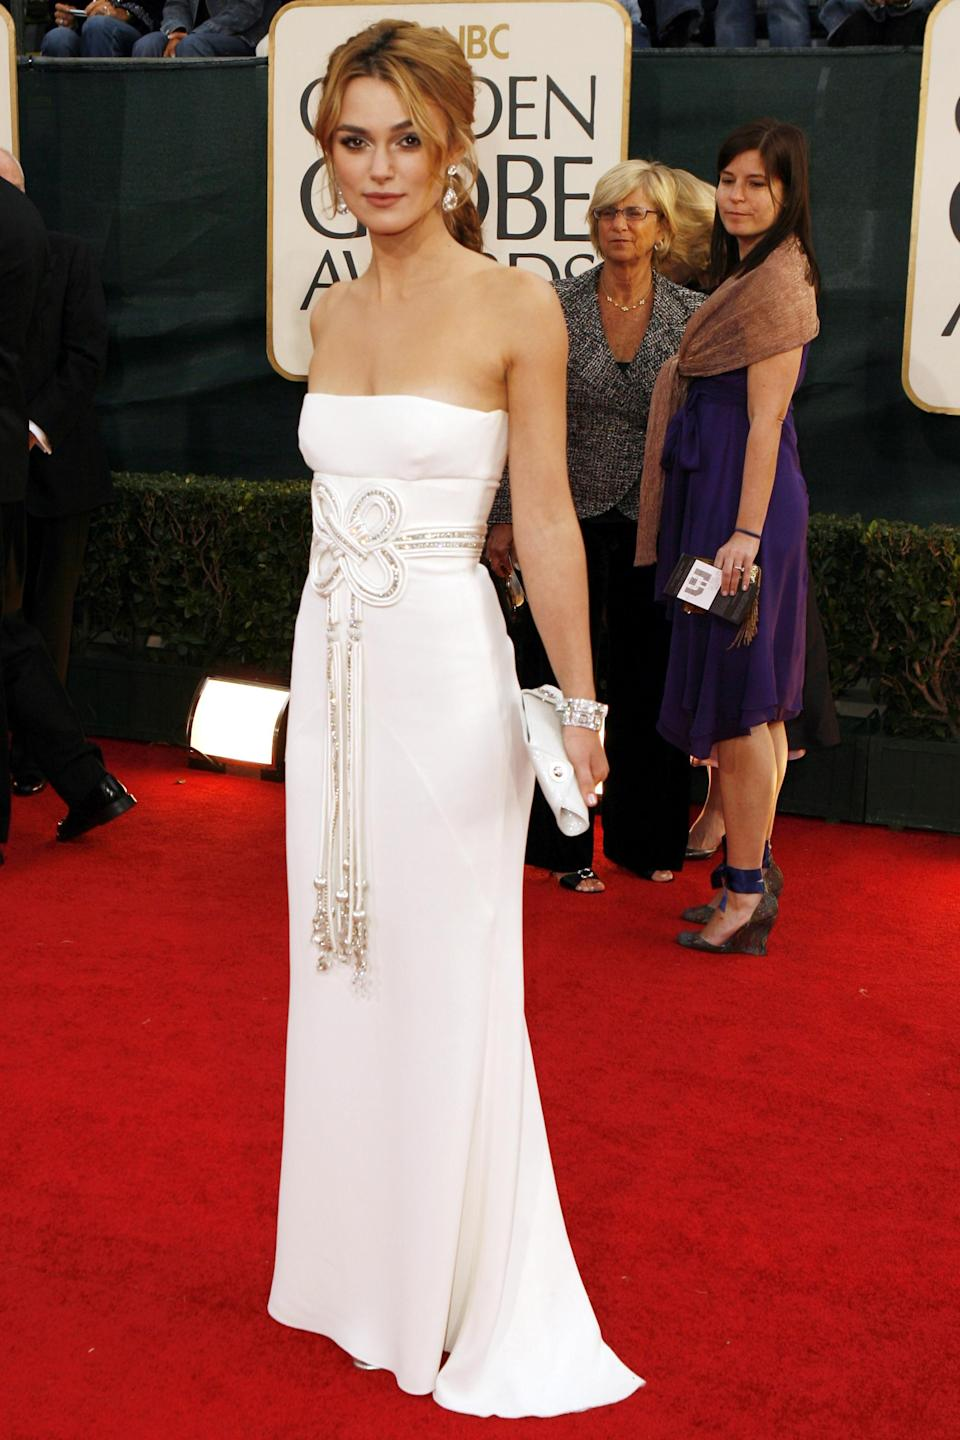 """<strong><h2>2006</h2></strong><br>Looking back on 2006 style, it hardly seems possible that Keira Knightley's strapless Valentino dress came out of the same year as chunky belts and low-rise cargo pants.<br><br><em>Keira Knightley in Valentino.</em><span class=""""copyright"""">Photo: Jeff Vespa/WireImage.</span>"""